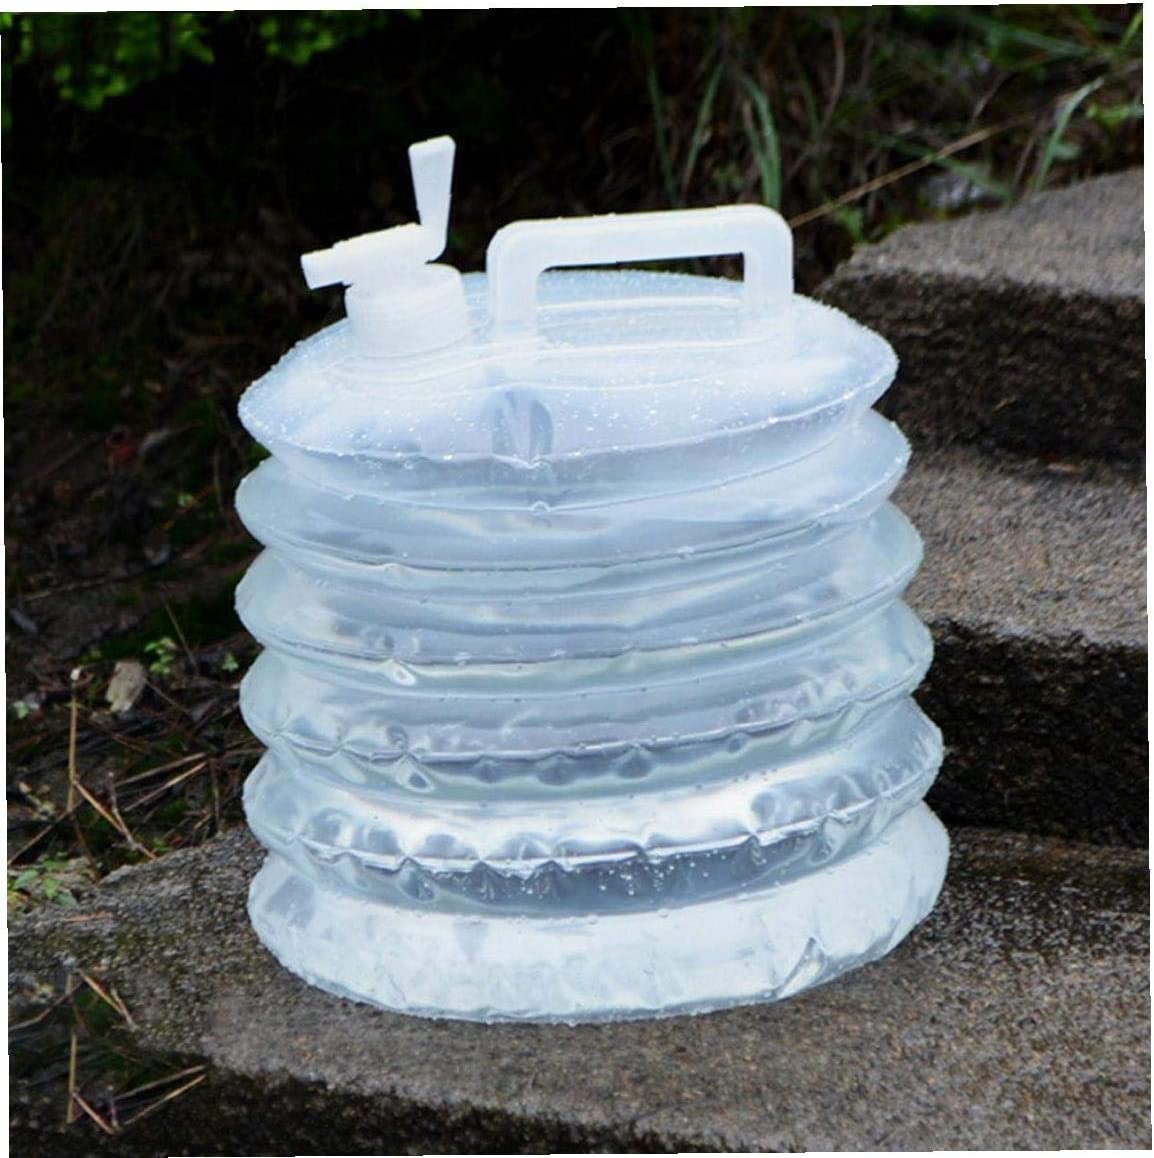 10l Collapsible Water Buckets Plastic Bottles with Tap Car Water Carrier Container for Camping Picnic Container Tool White for Sportrs